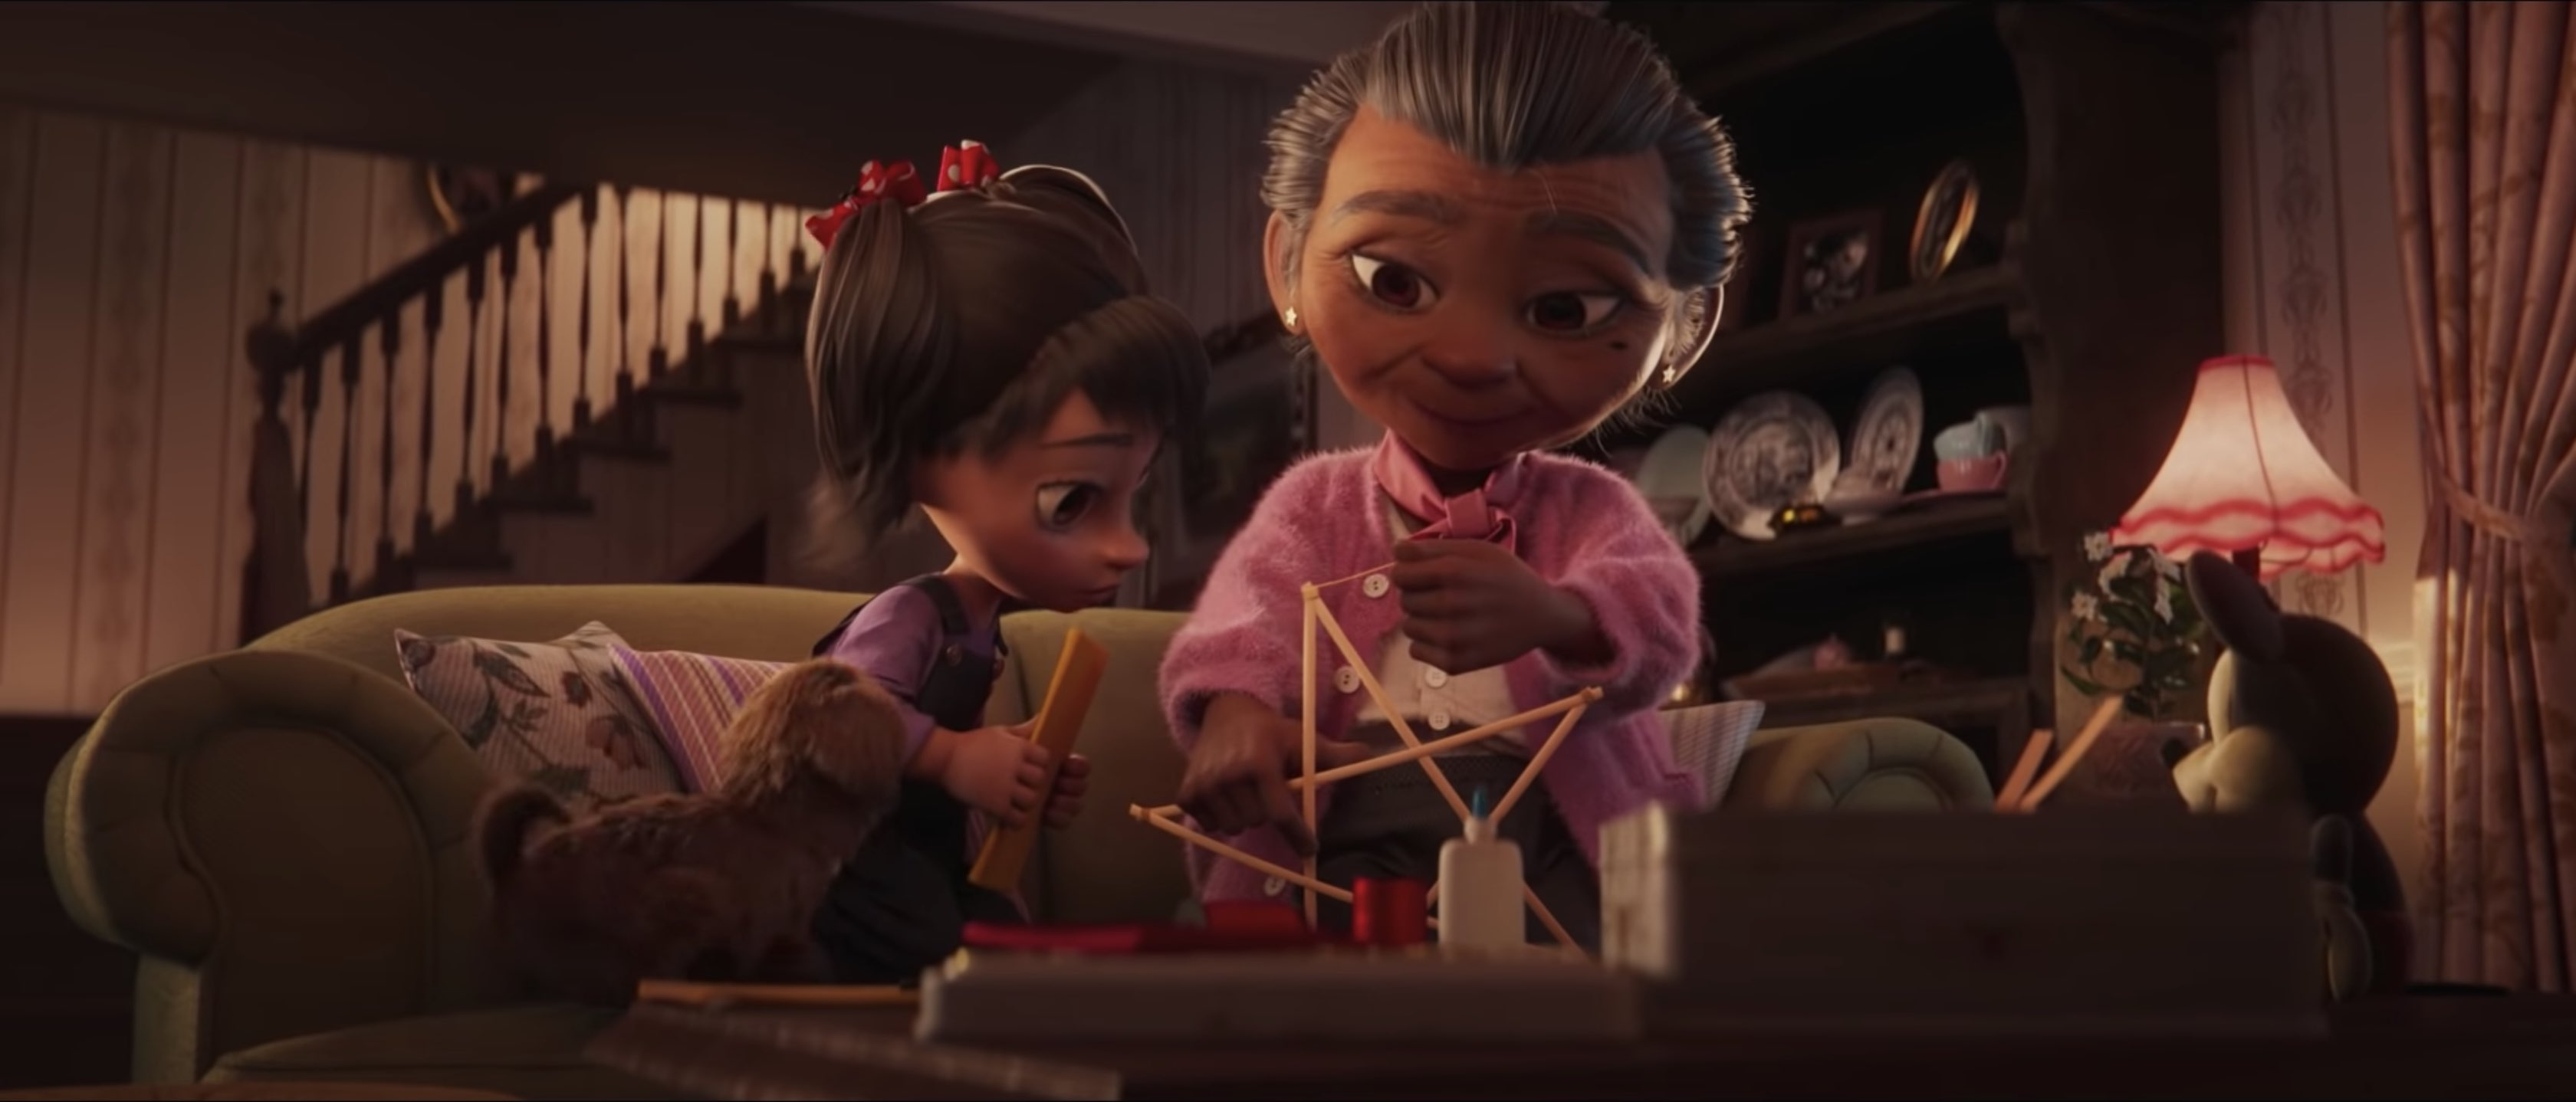 From Our Family To Yours: Disney partners with New Zealand based studio Flux Animation to create a heartwarming tale of family traditions